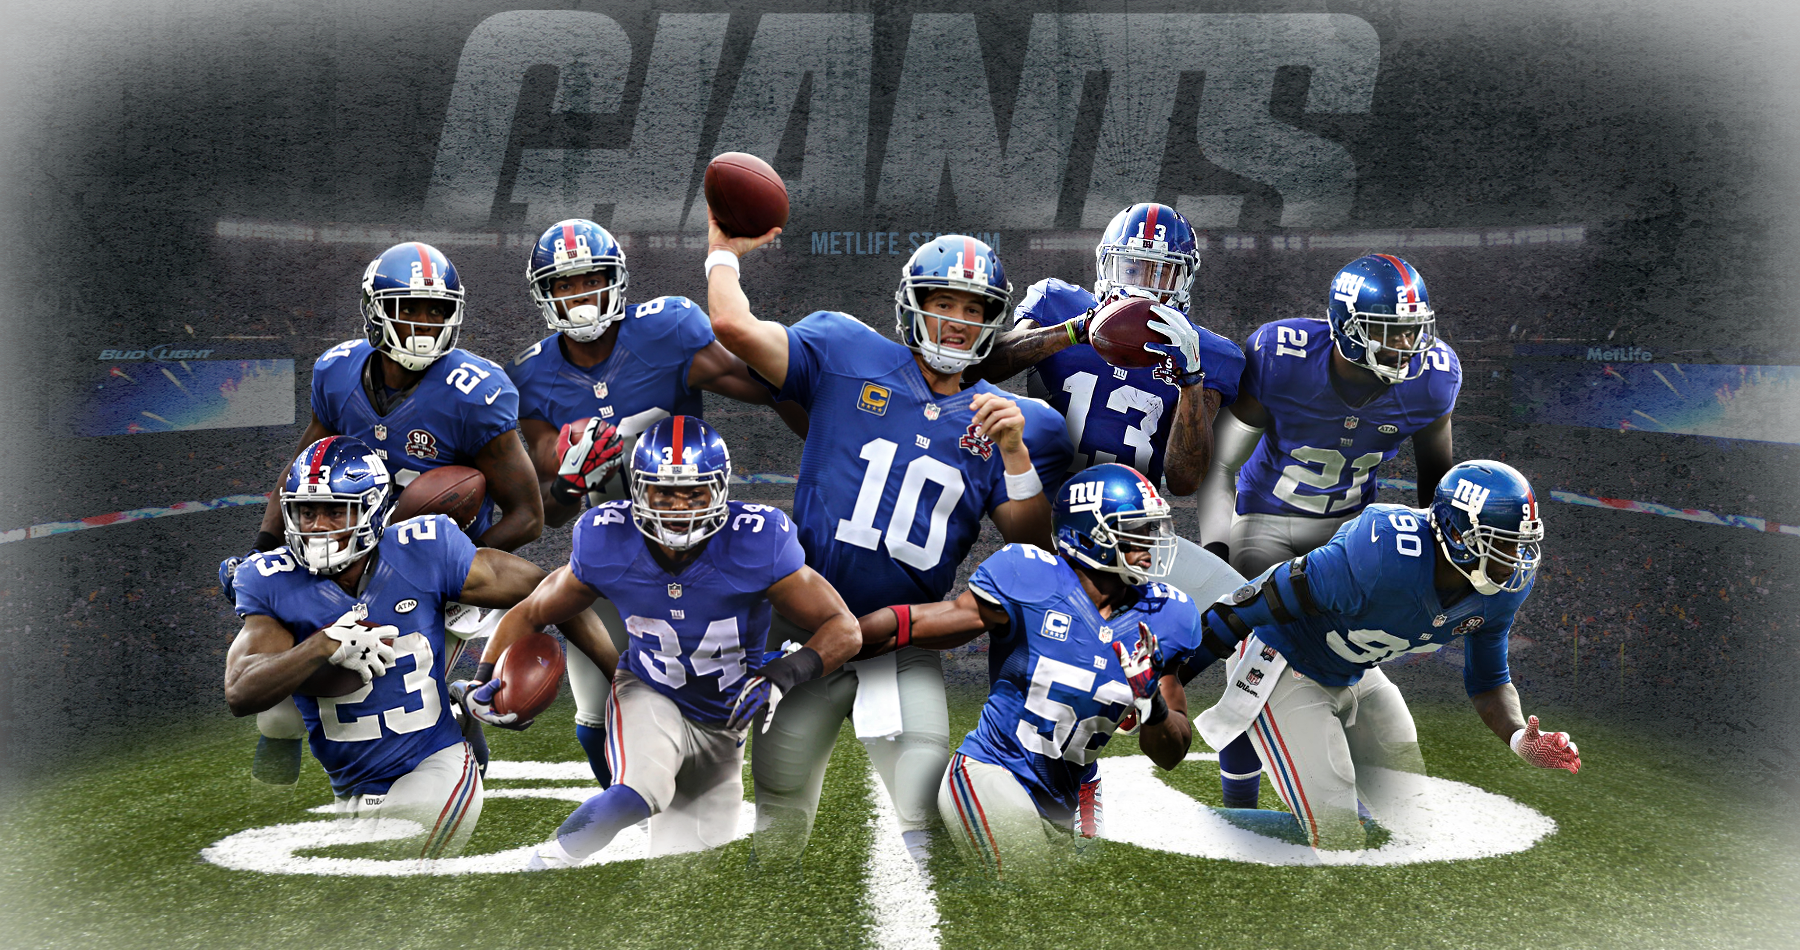 Ny Giants Wallpaper 2015